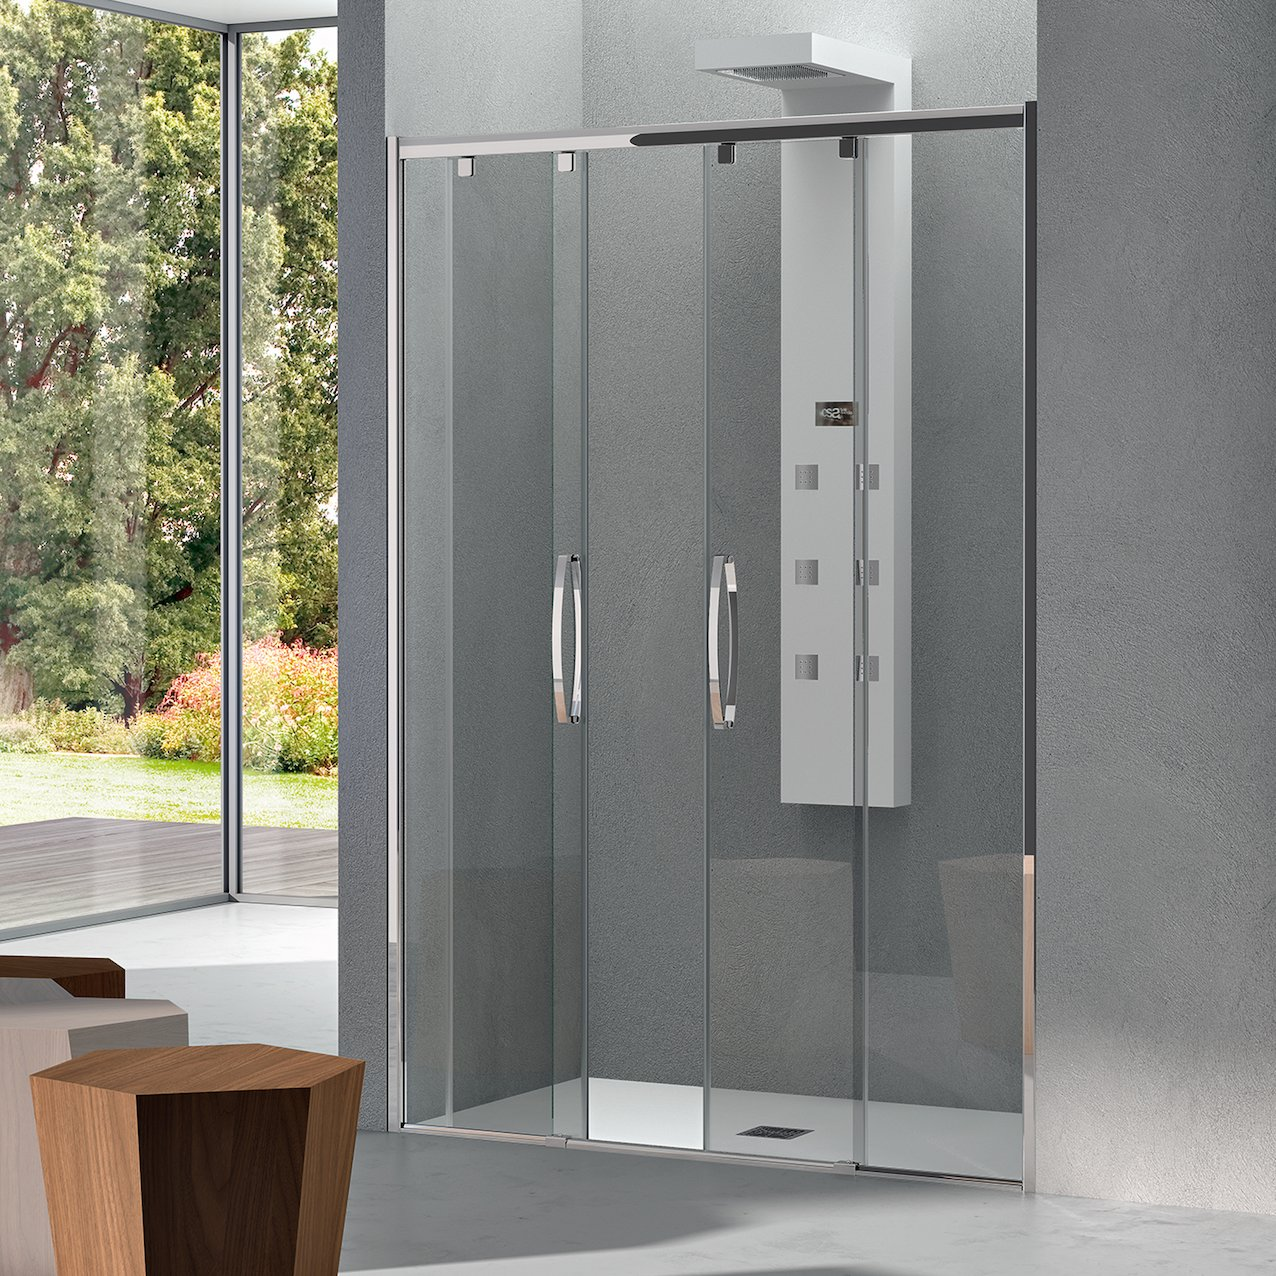 Sliding Shower Enclosure Niagara